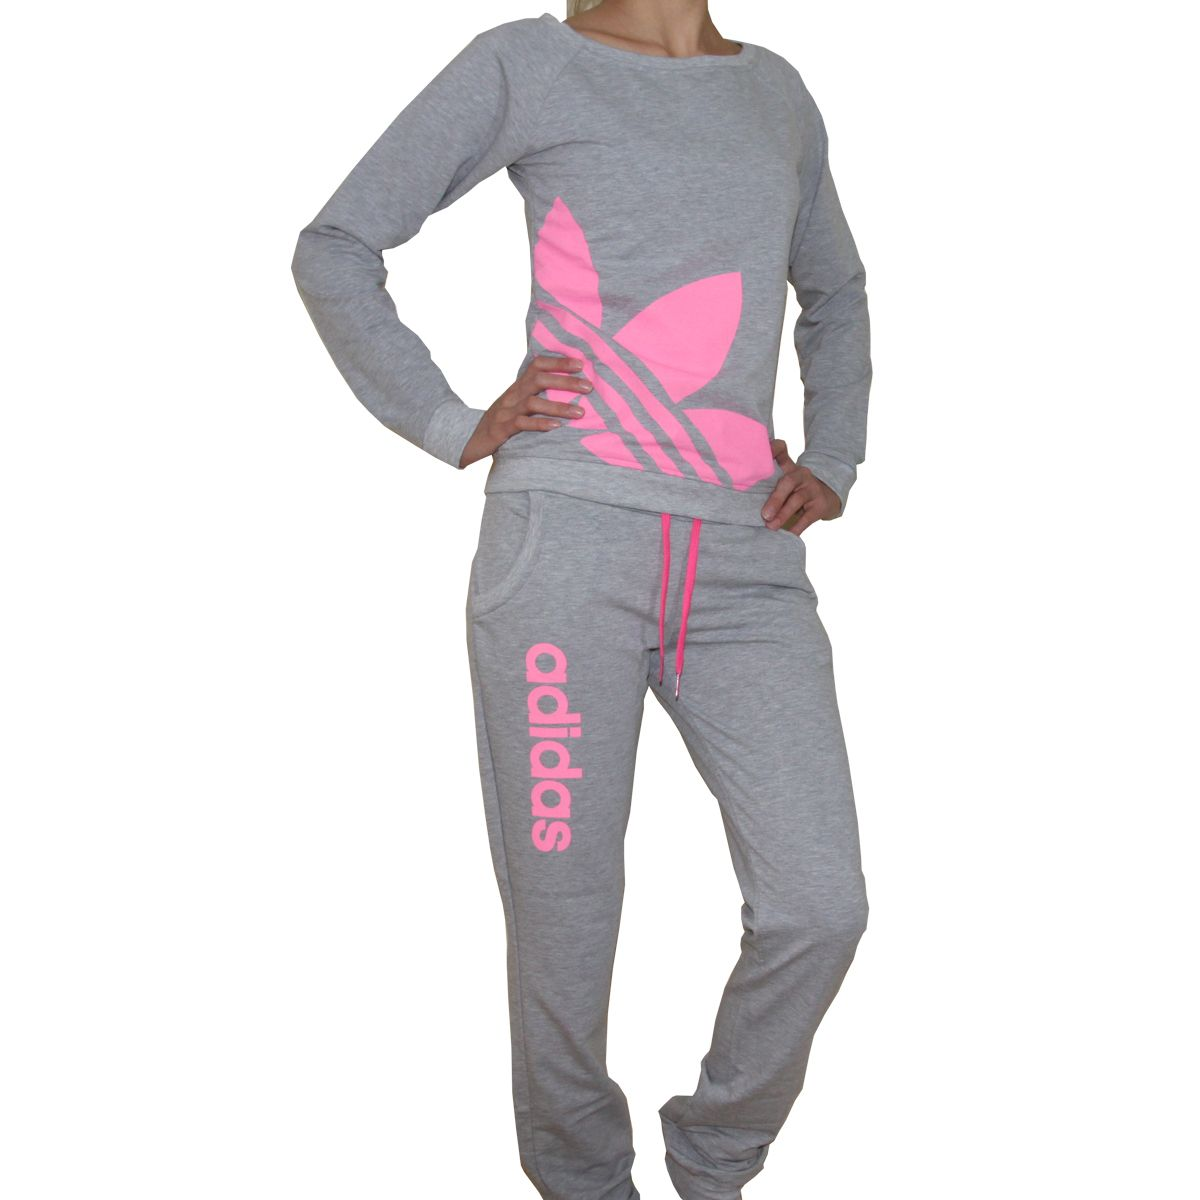 New Season Adidas Neon Series Women Tracksuit cotton material, comfortable,  multiple neon colors made